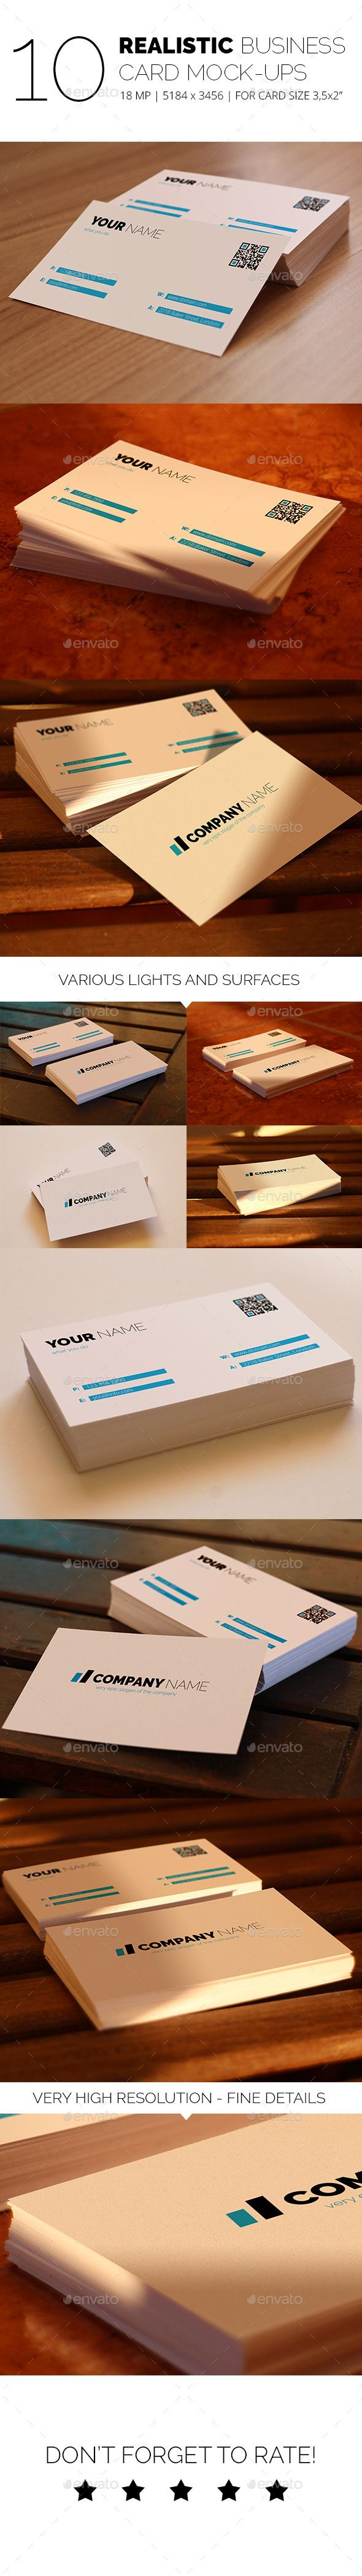 22 best graphic design images on pinterest business card design realistic business card mock up pack 2 reheart Images